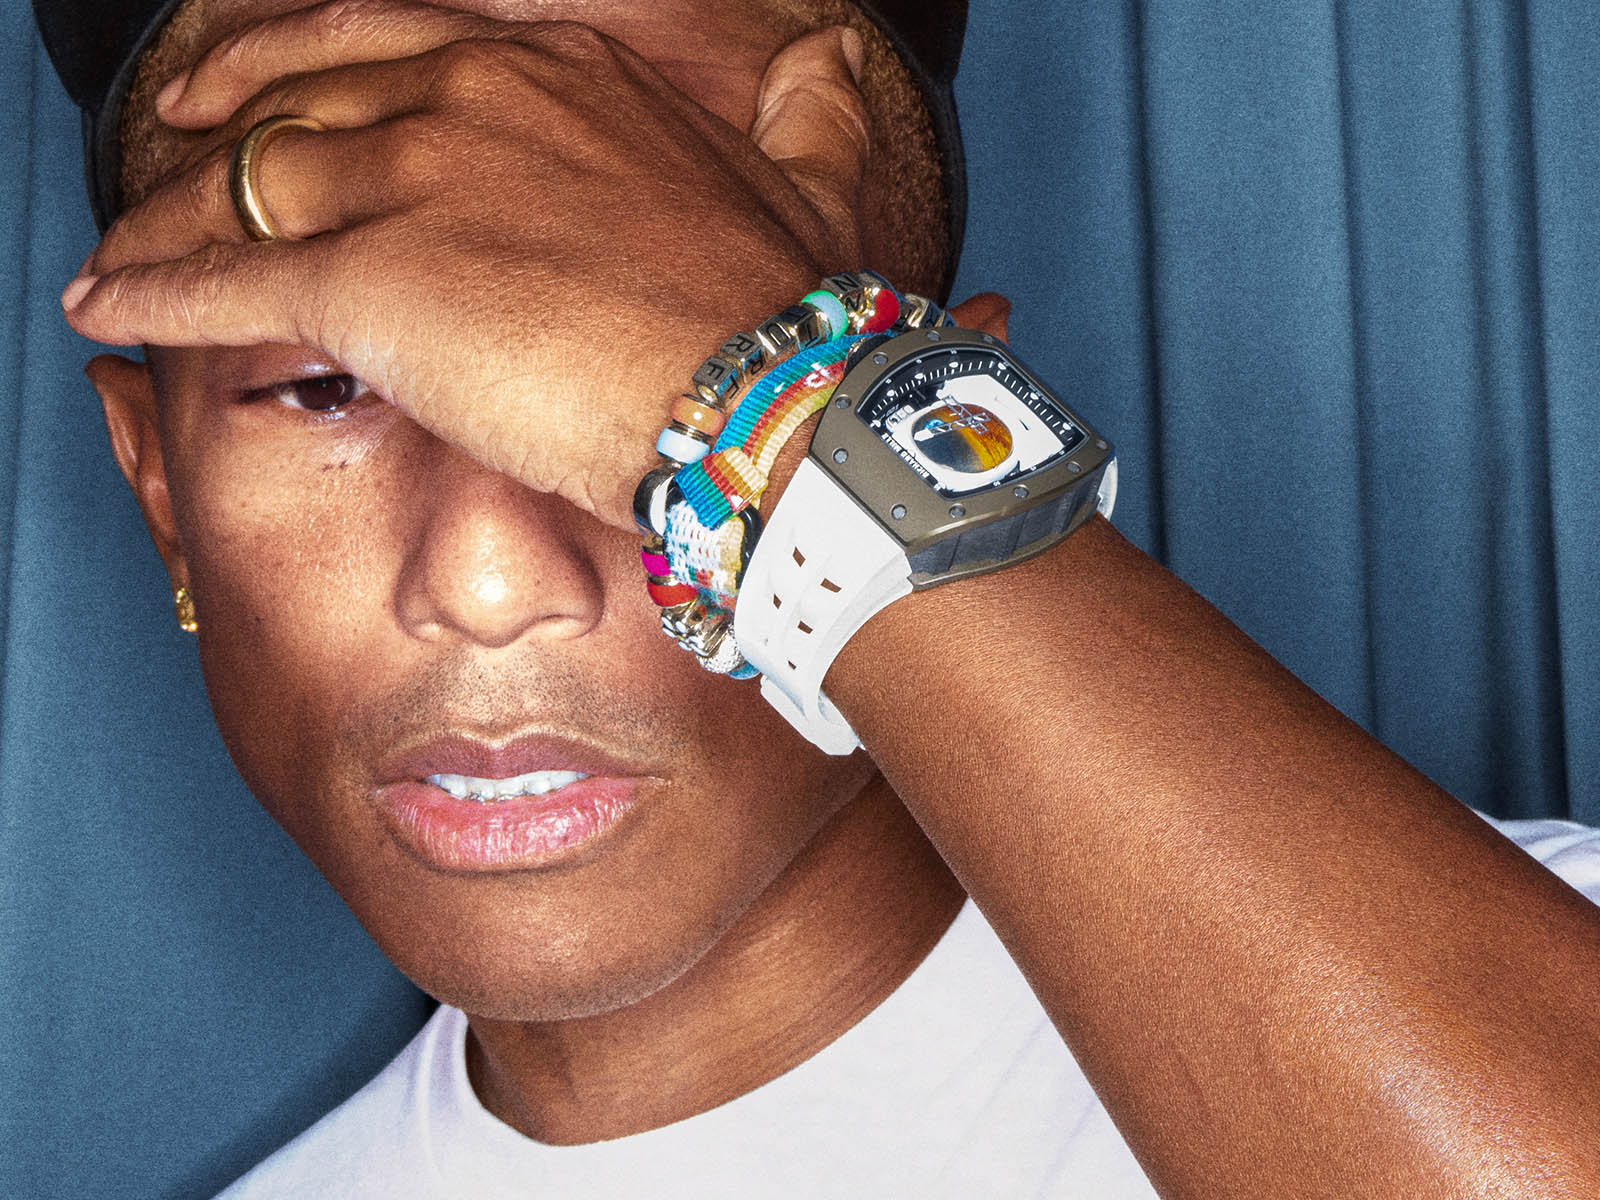 rm-52-05-richard-mille-tourbillon-pharrell-williams-9.jpg